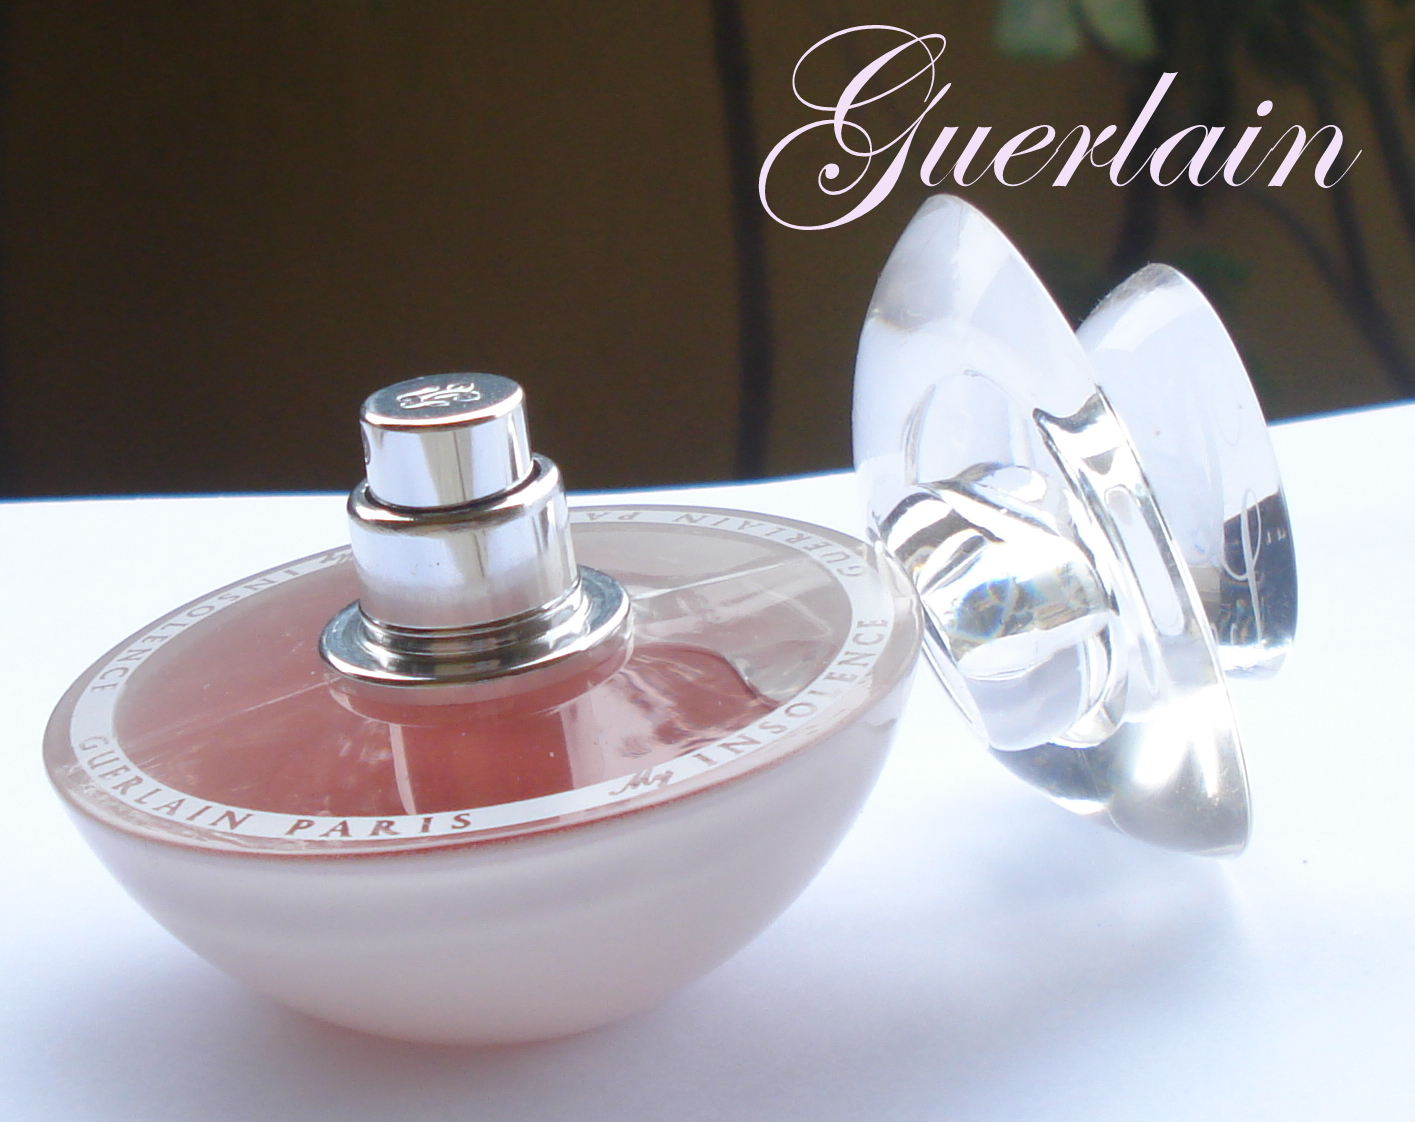 Guerlain My Insolence Perfume Review Delicate Florals With A